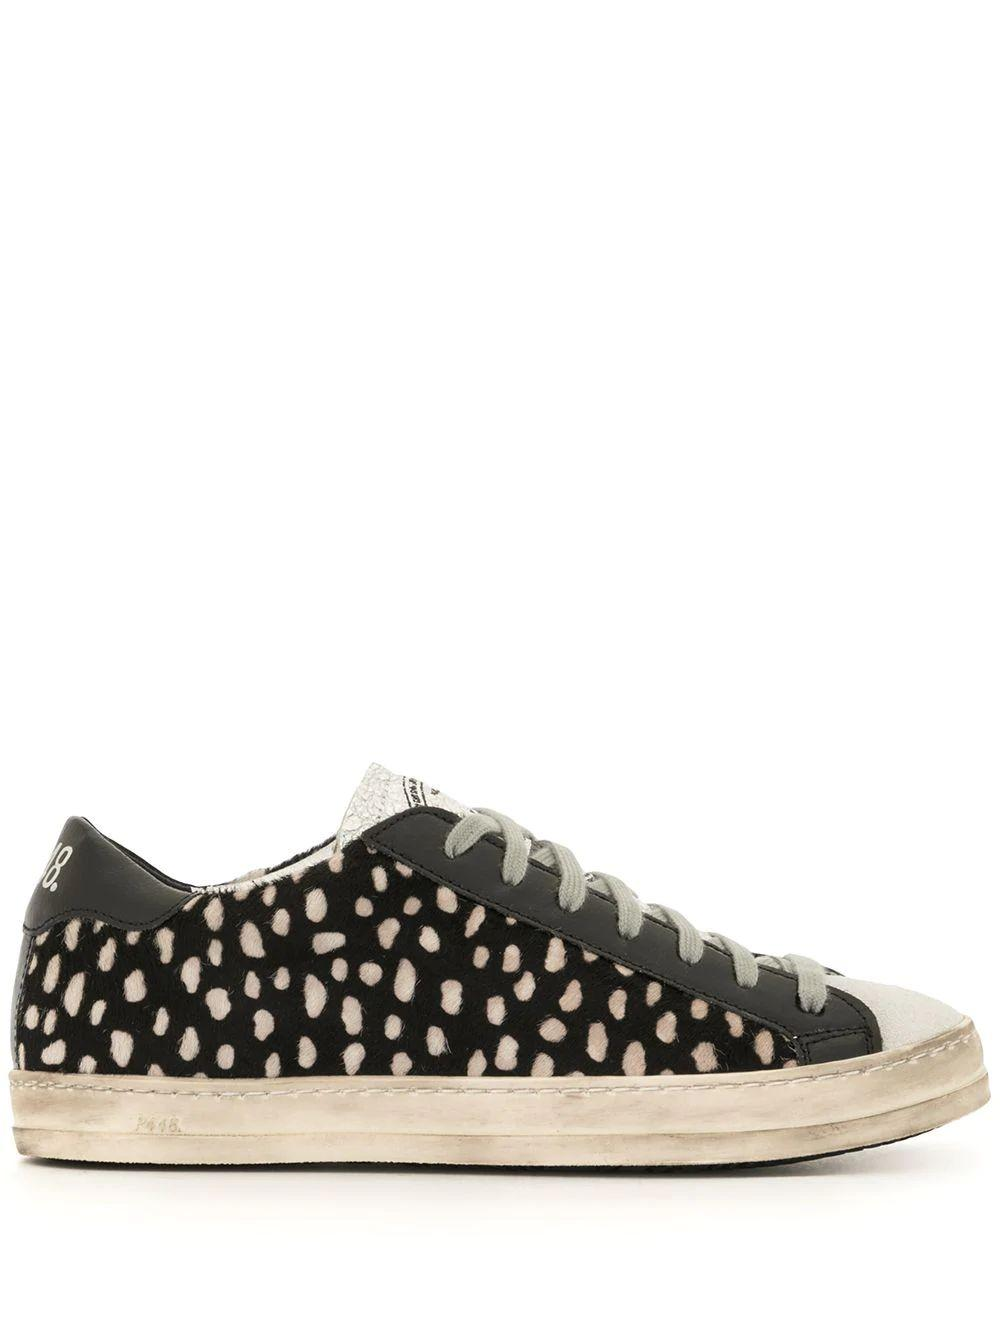 All Over Spotted Sneaker